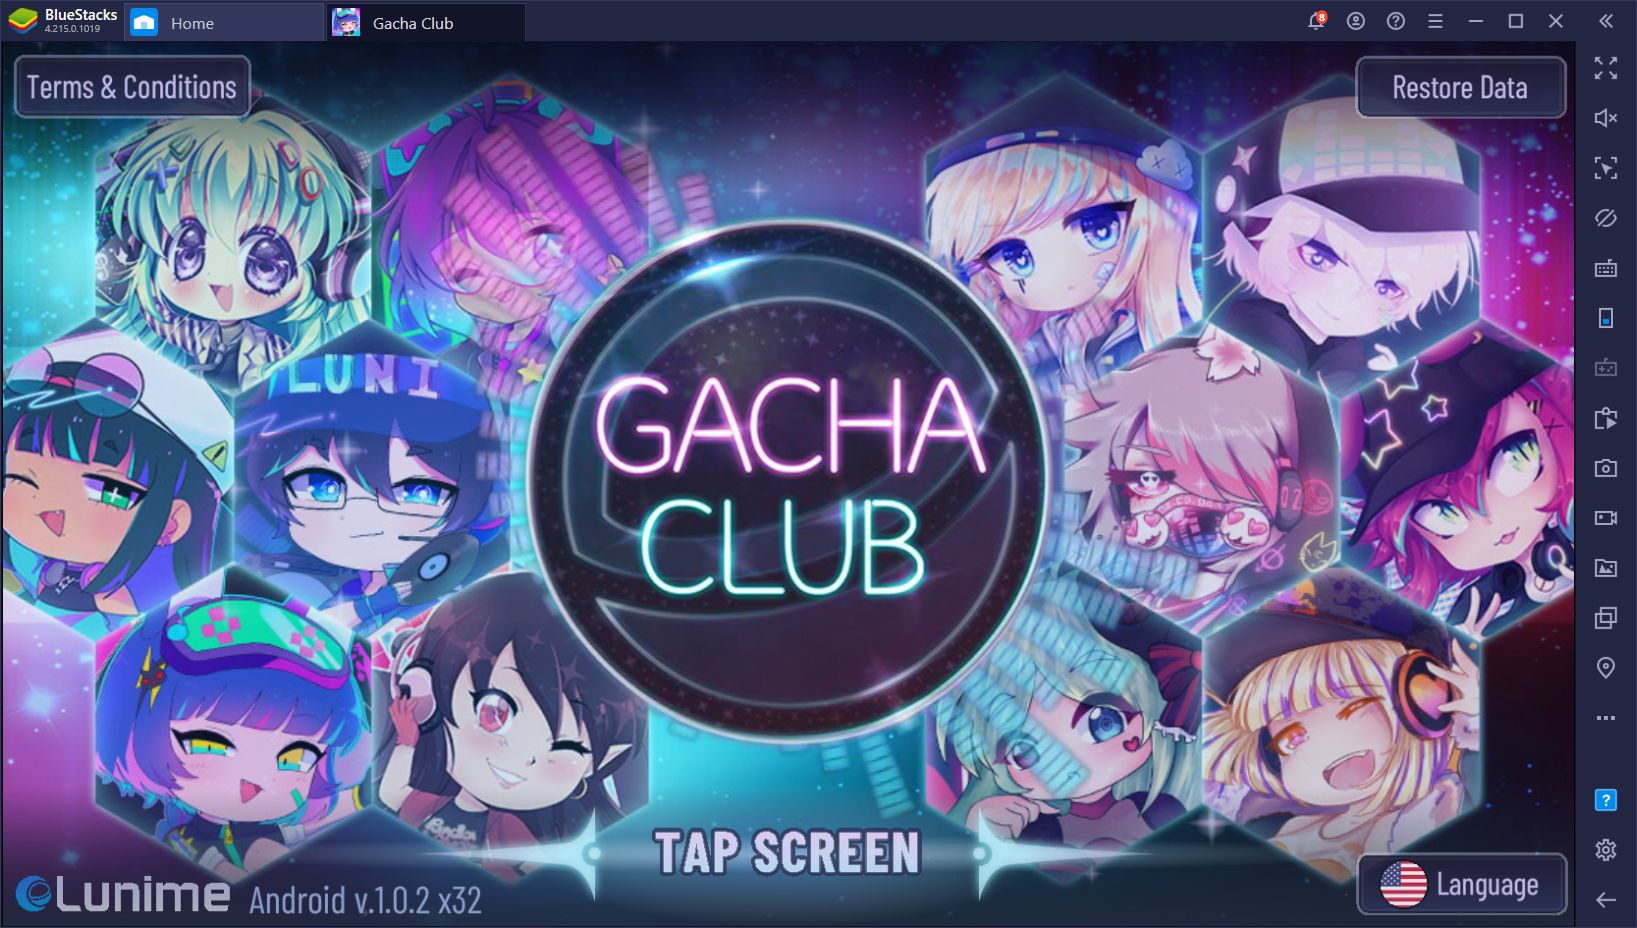 How to Play Gacha Club on PC